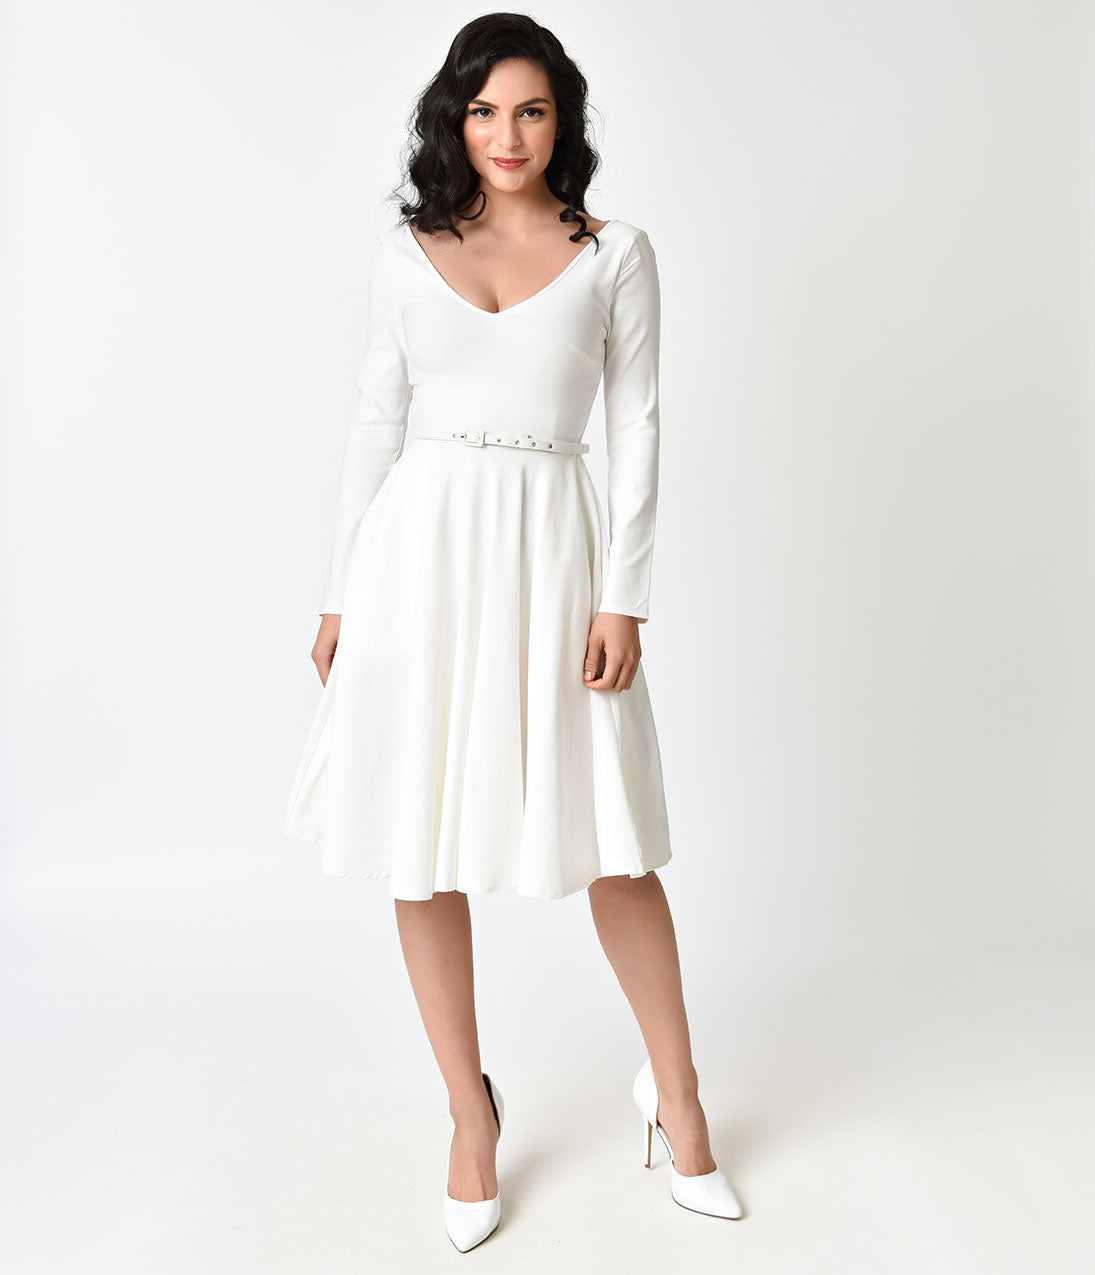 1940s Style Wedding Dresses | Classic Wedding Dresses Unique Vintage 1950s Ivory Stretch Long Sleeve Maude Swing Dress $98.00 AT vintagedancer.com